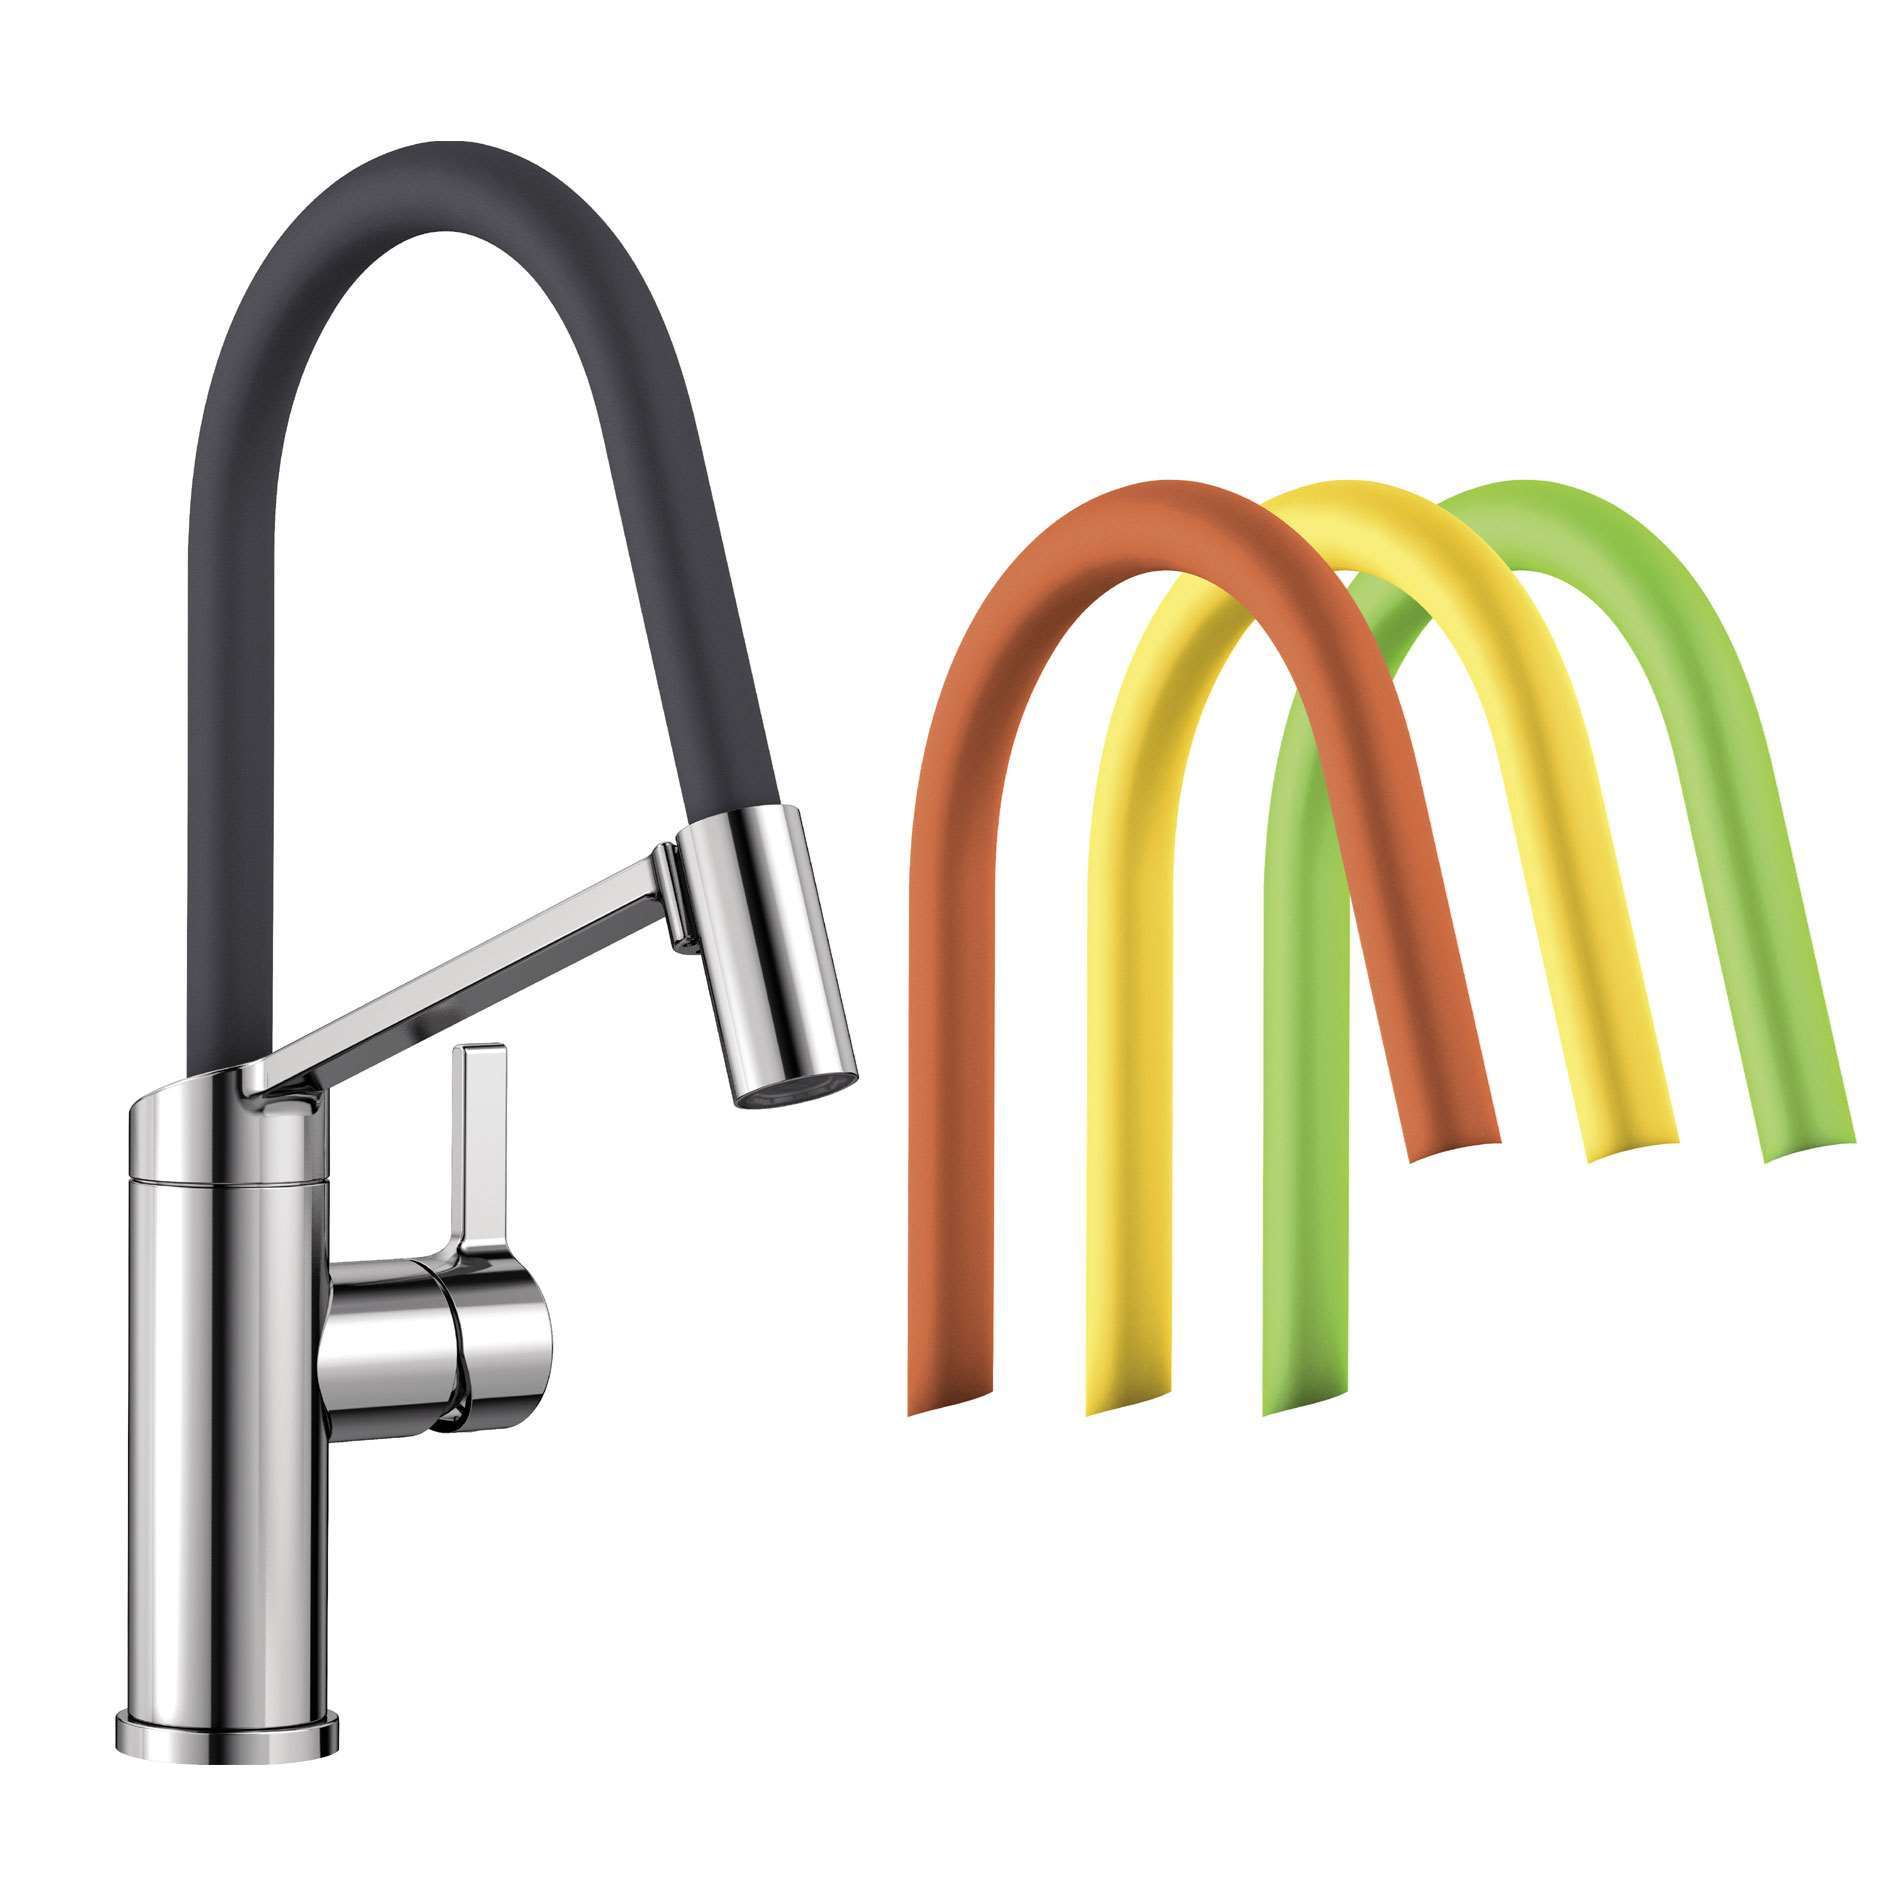 Picture of Viu-S Chrome Tap With Exchangeable Hoses